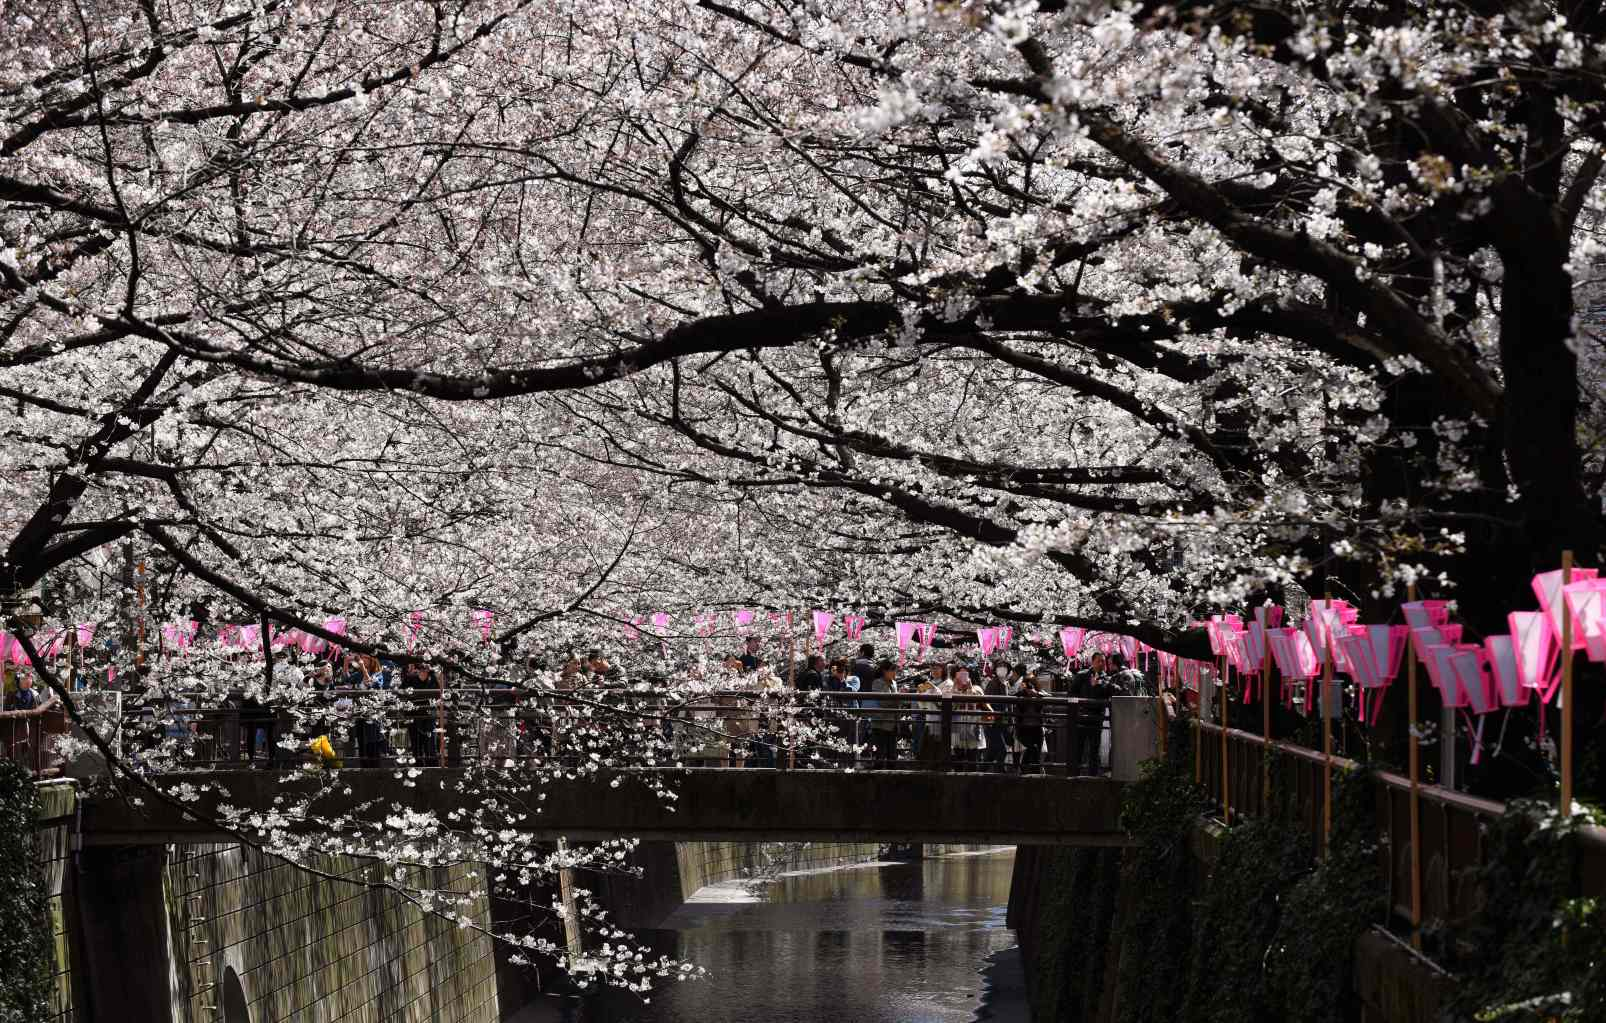 TOPSHOT - People walk under cherry blossoms in full bloom in Tokyo on March 23, 2018. The meteorological agency said this year's first blossoms appeared nine days earlier than average due to warm weather. / AFP PHOTO / Kazuhiro NOGI        (Photo credit should read KAZUHIRO NOGI/AFP/Getty Images)